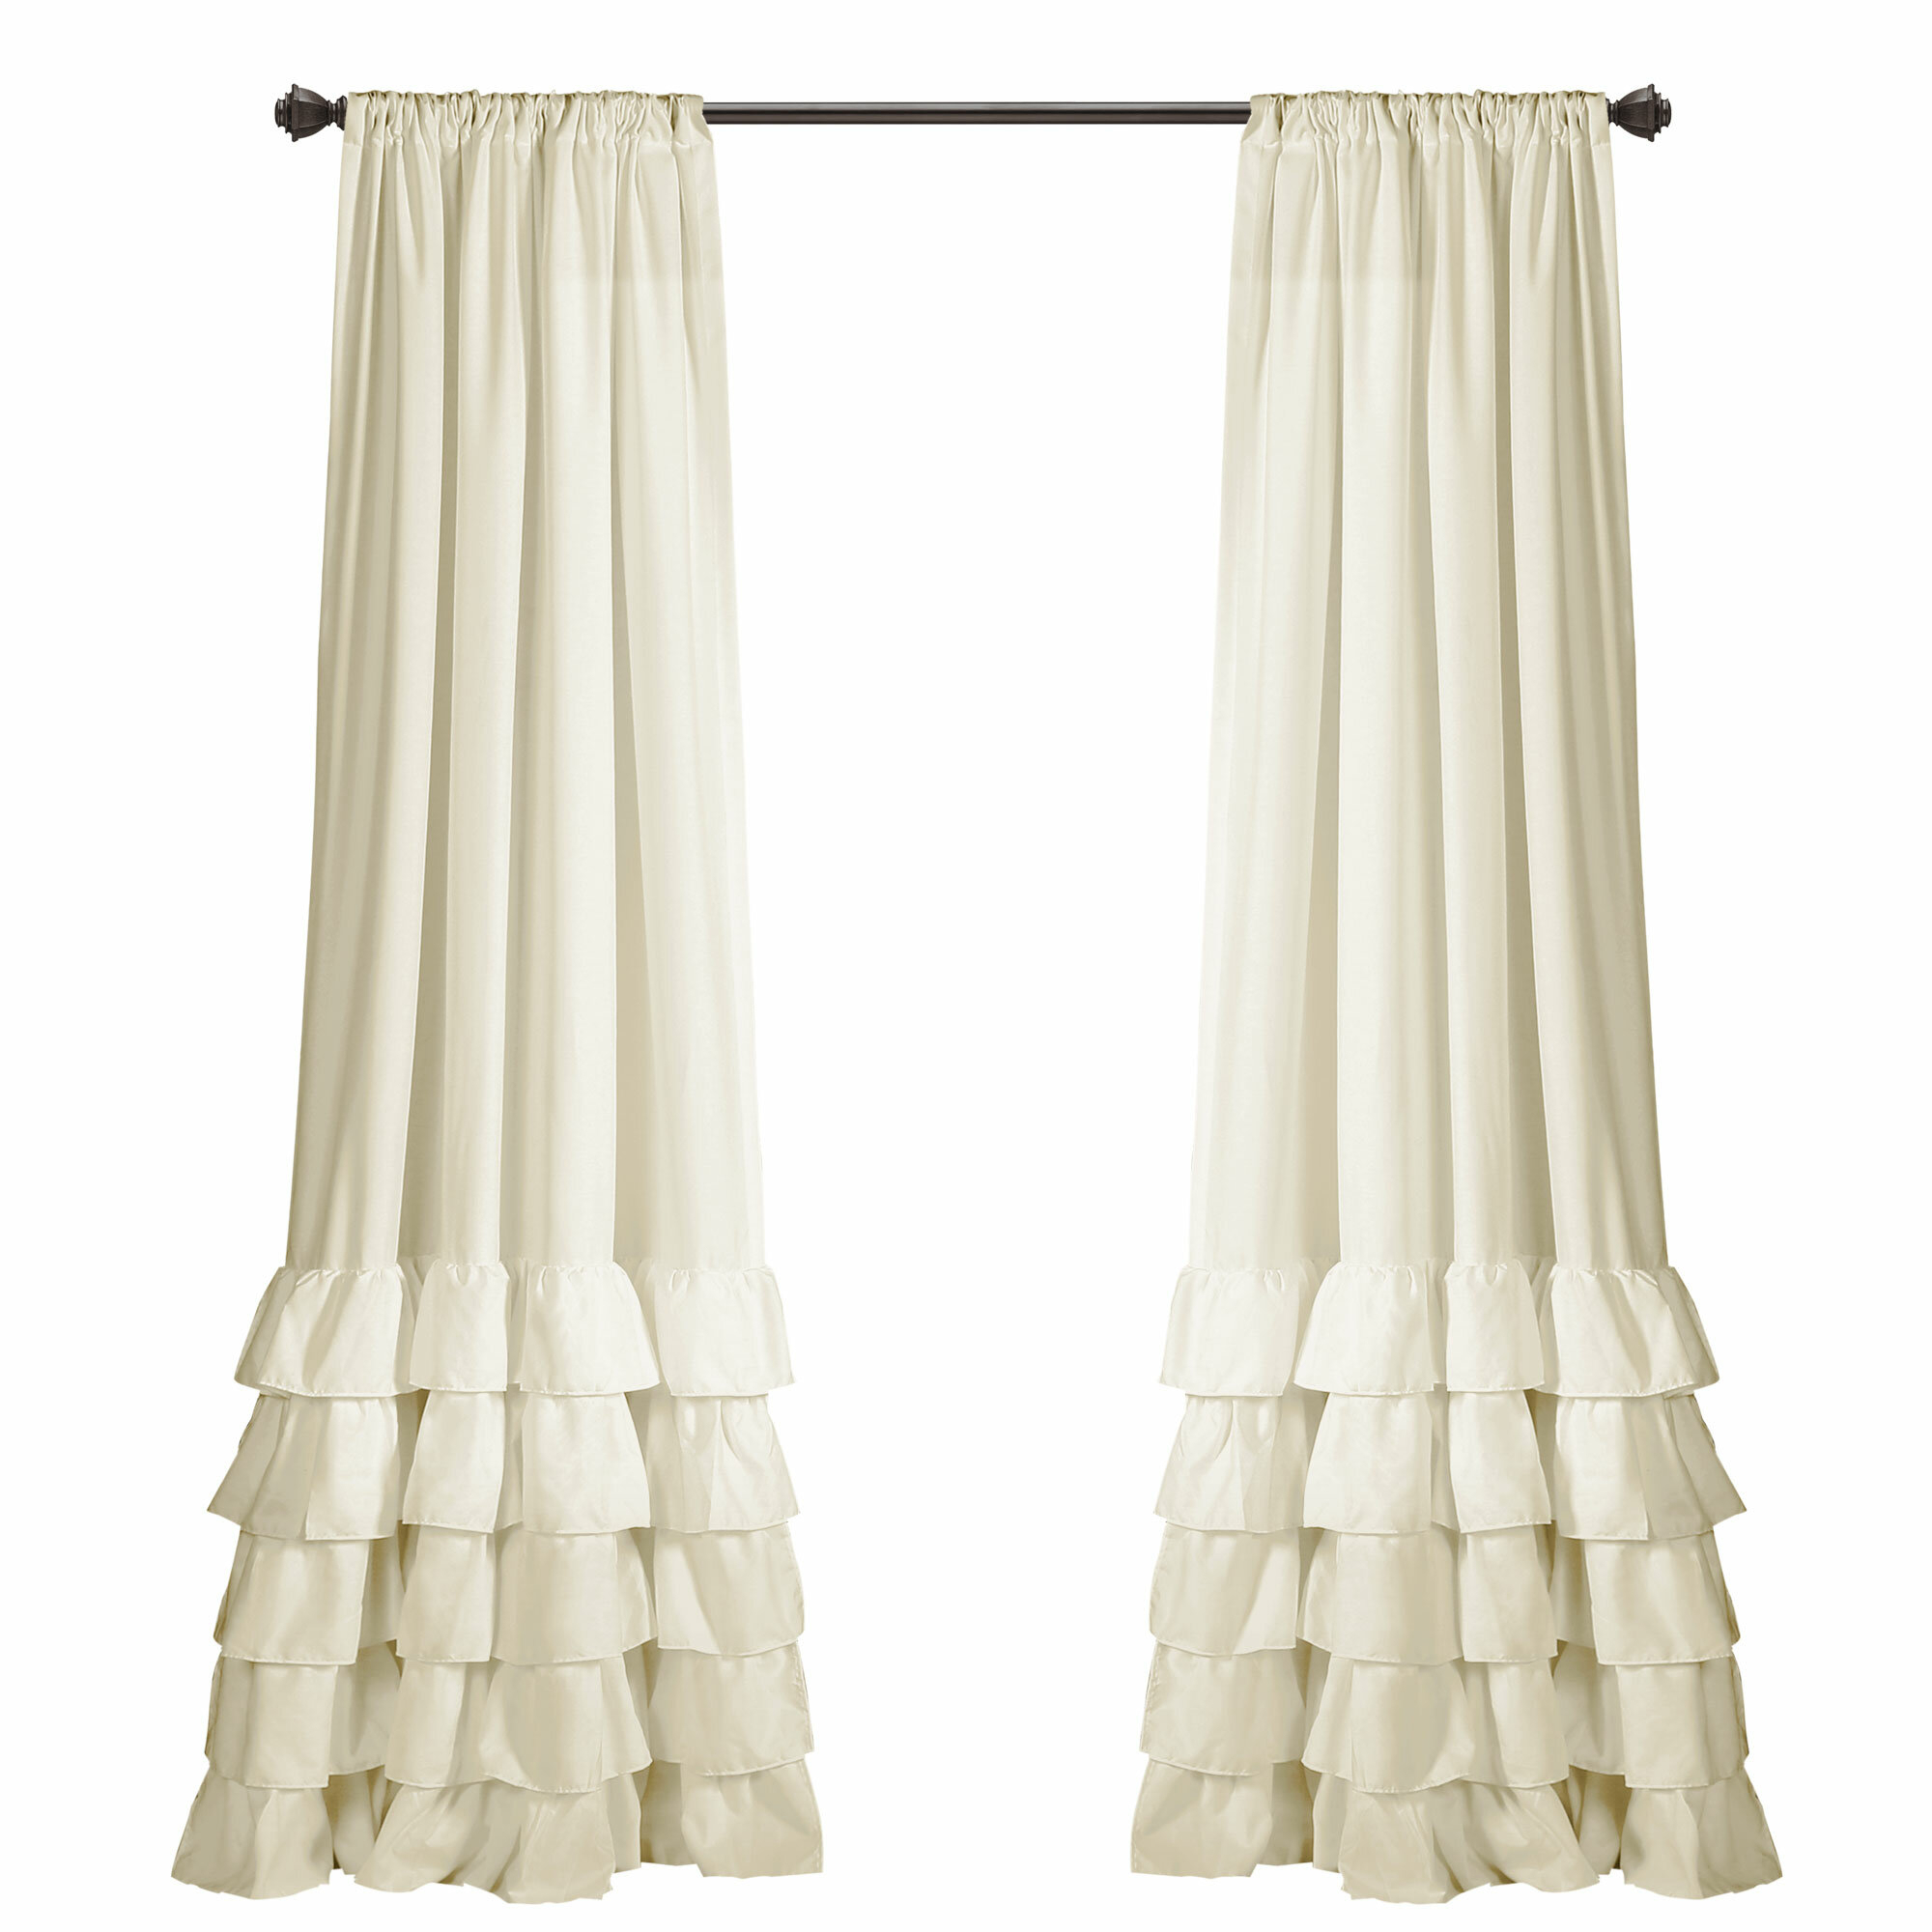 Keeley Ruffle Solid Semi Sheer Rod Pocket Curtain Panels With Rod Pocket Cotton Solid Color Ruched Ruffle Kitchen Curtains (Gallery 16 of 20)